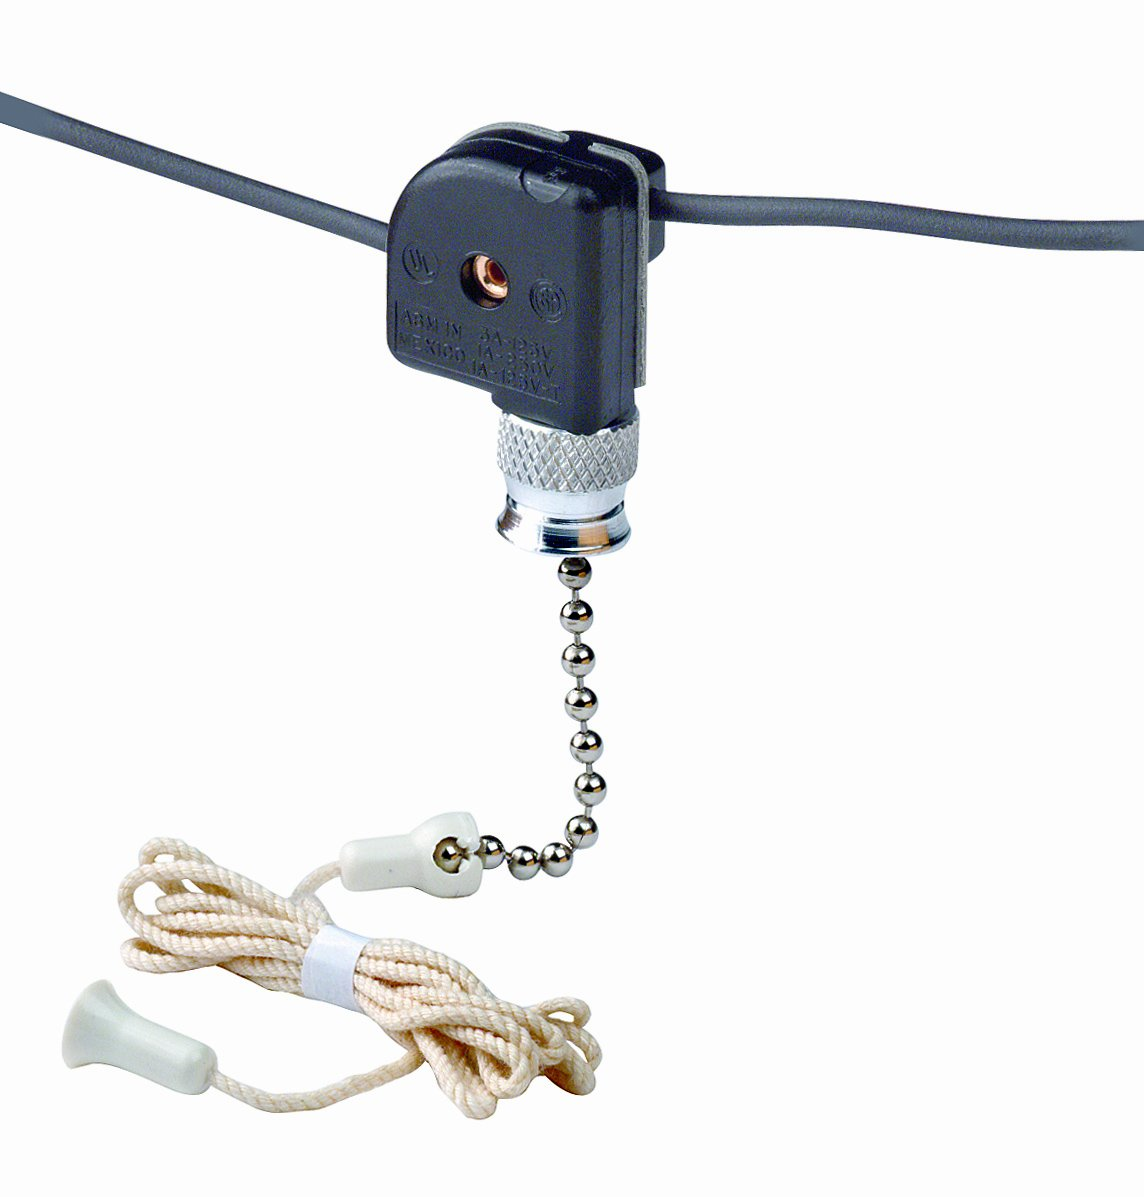 Leviton 10097-8 Pull Chain Switch, Single Pole On-Off; 1A-125V T, 3A-125V, 1A-250V; With Two 6 Inch Black Leads 18 Awg Awm Tew 105C 600V, Stripped 1/2 Inch